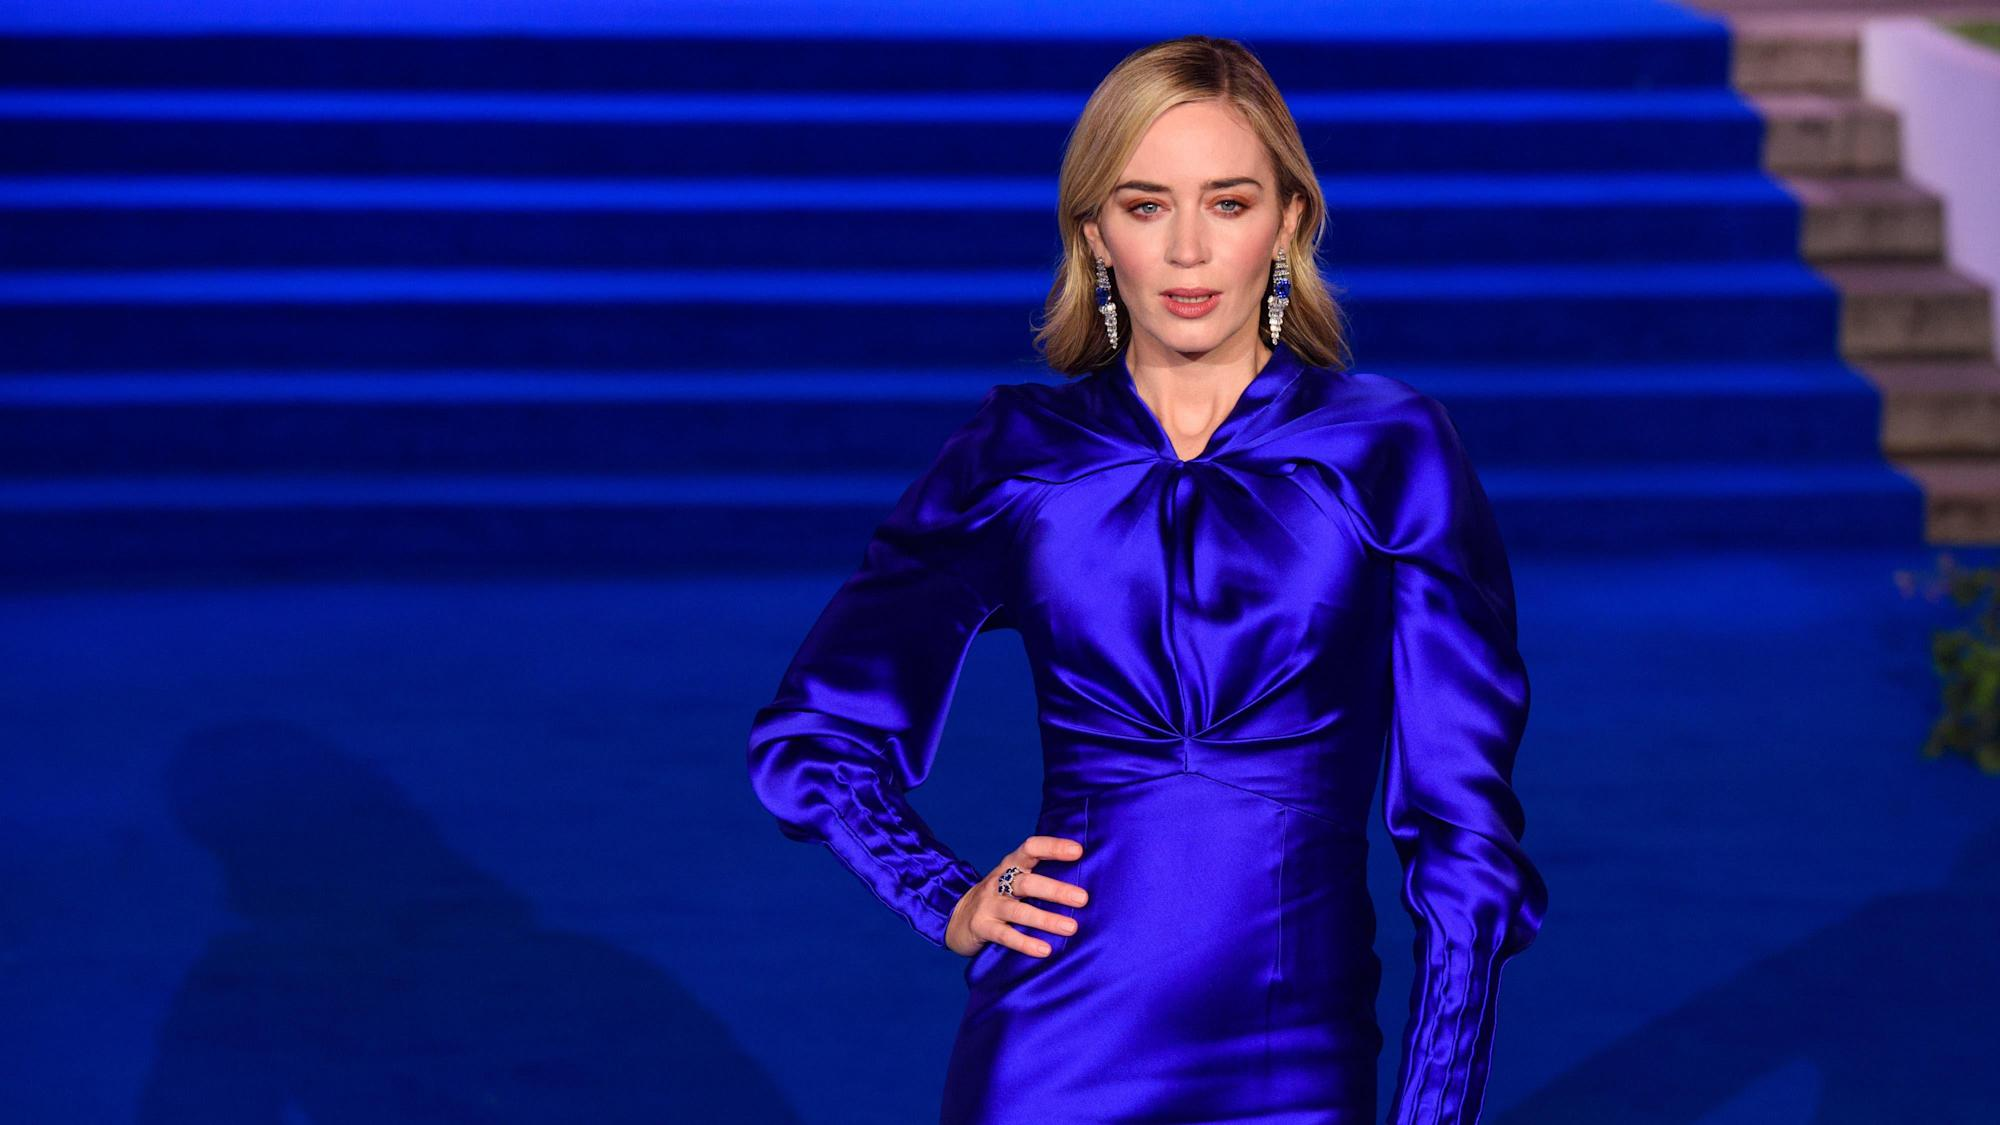 Emily Blunt to star in epic western series The English for BBC One